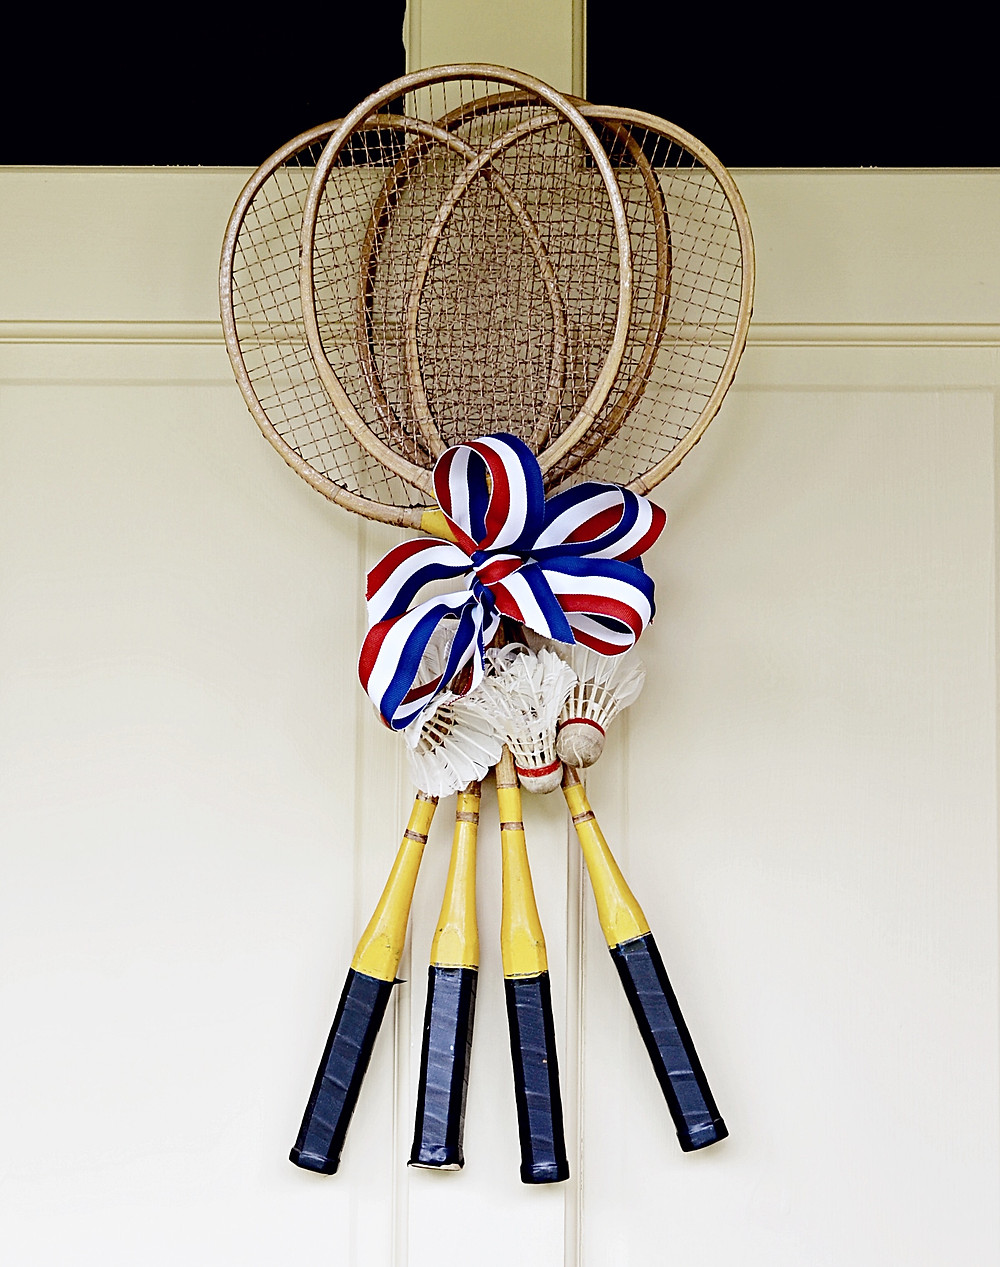 Vintage badminton racquets with vintage birdies and red, white and blue ribbon.